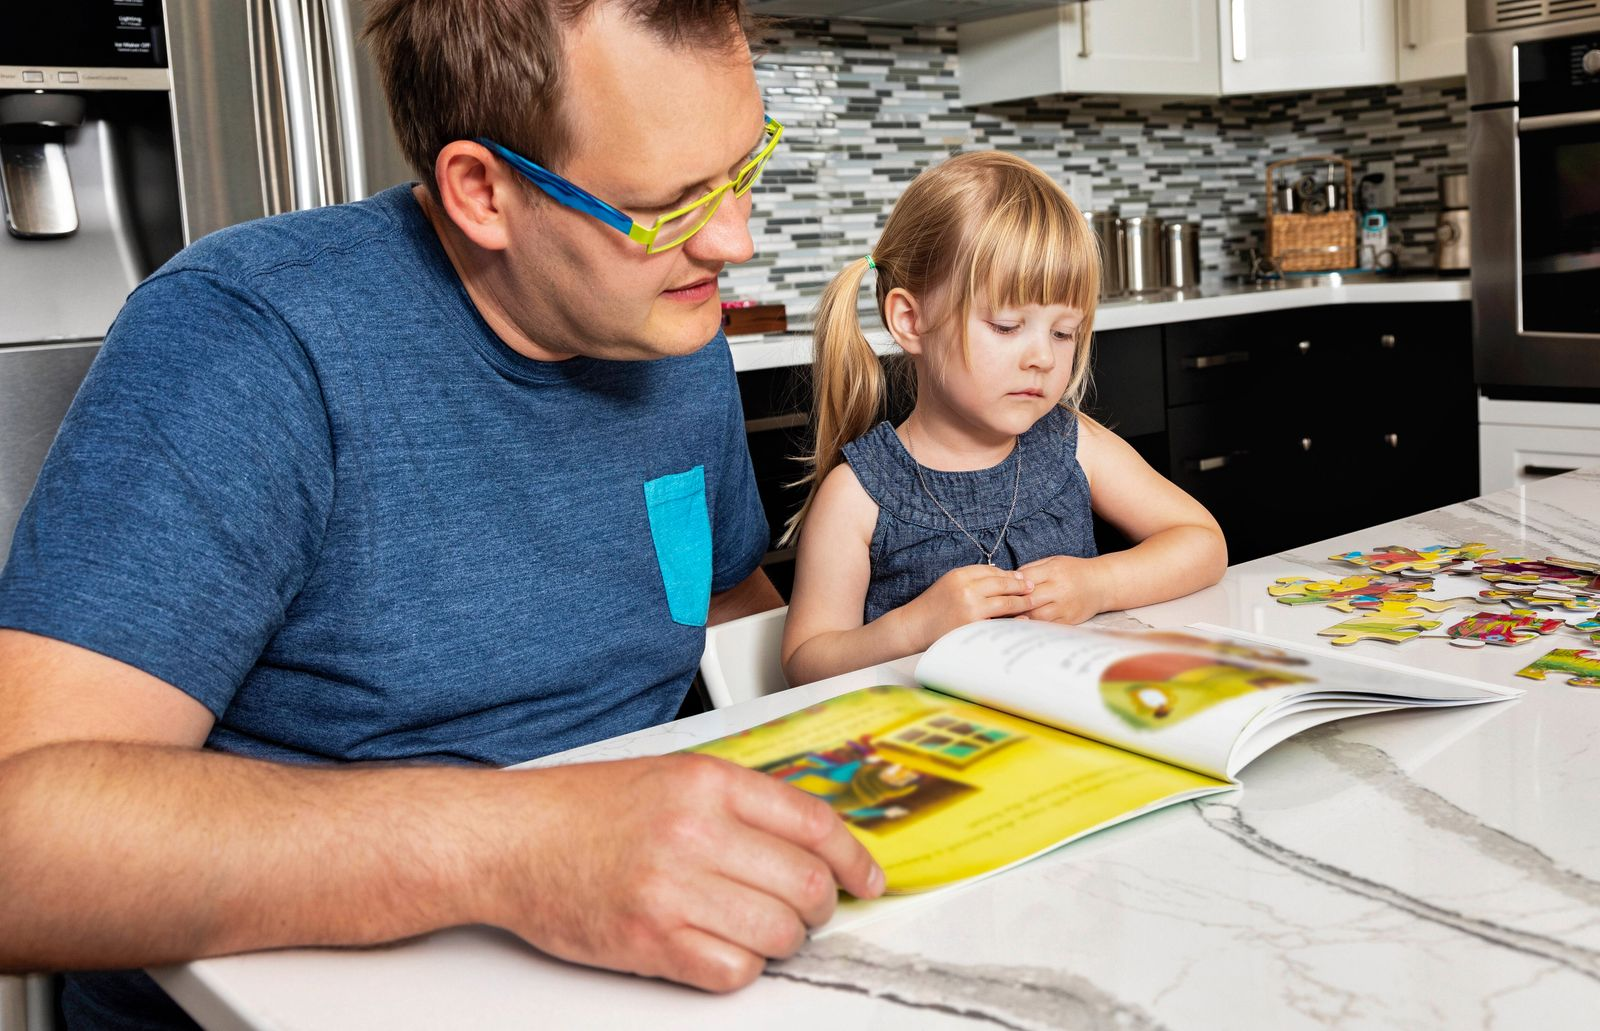 A father sitting down with his young daughter in the kitchen to read a book: Edmonton, Alberta, Canada PUBLICATIONxINxGE